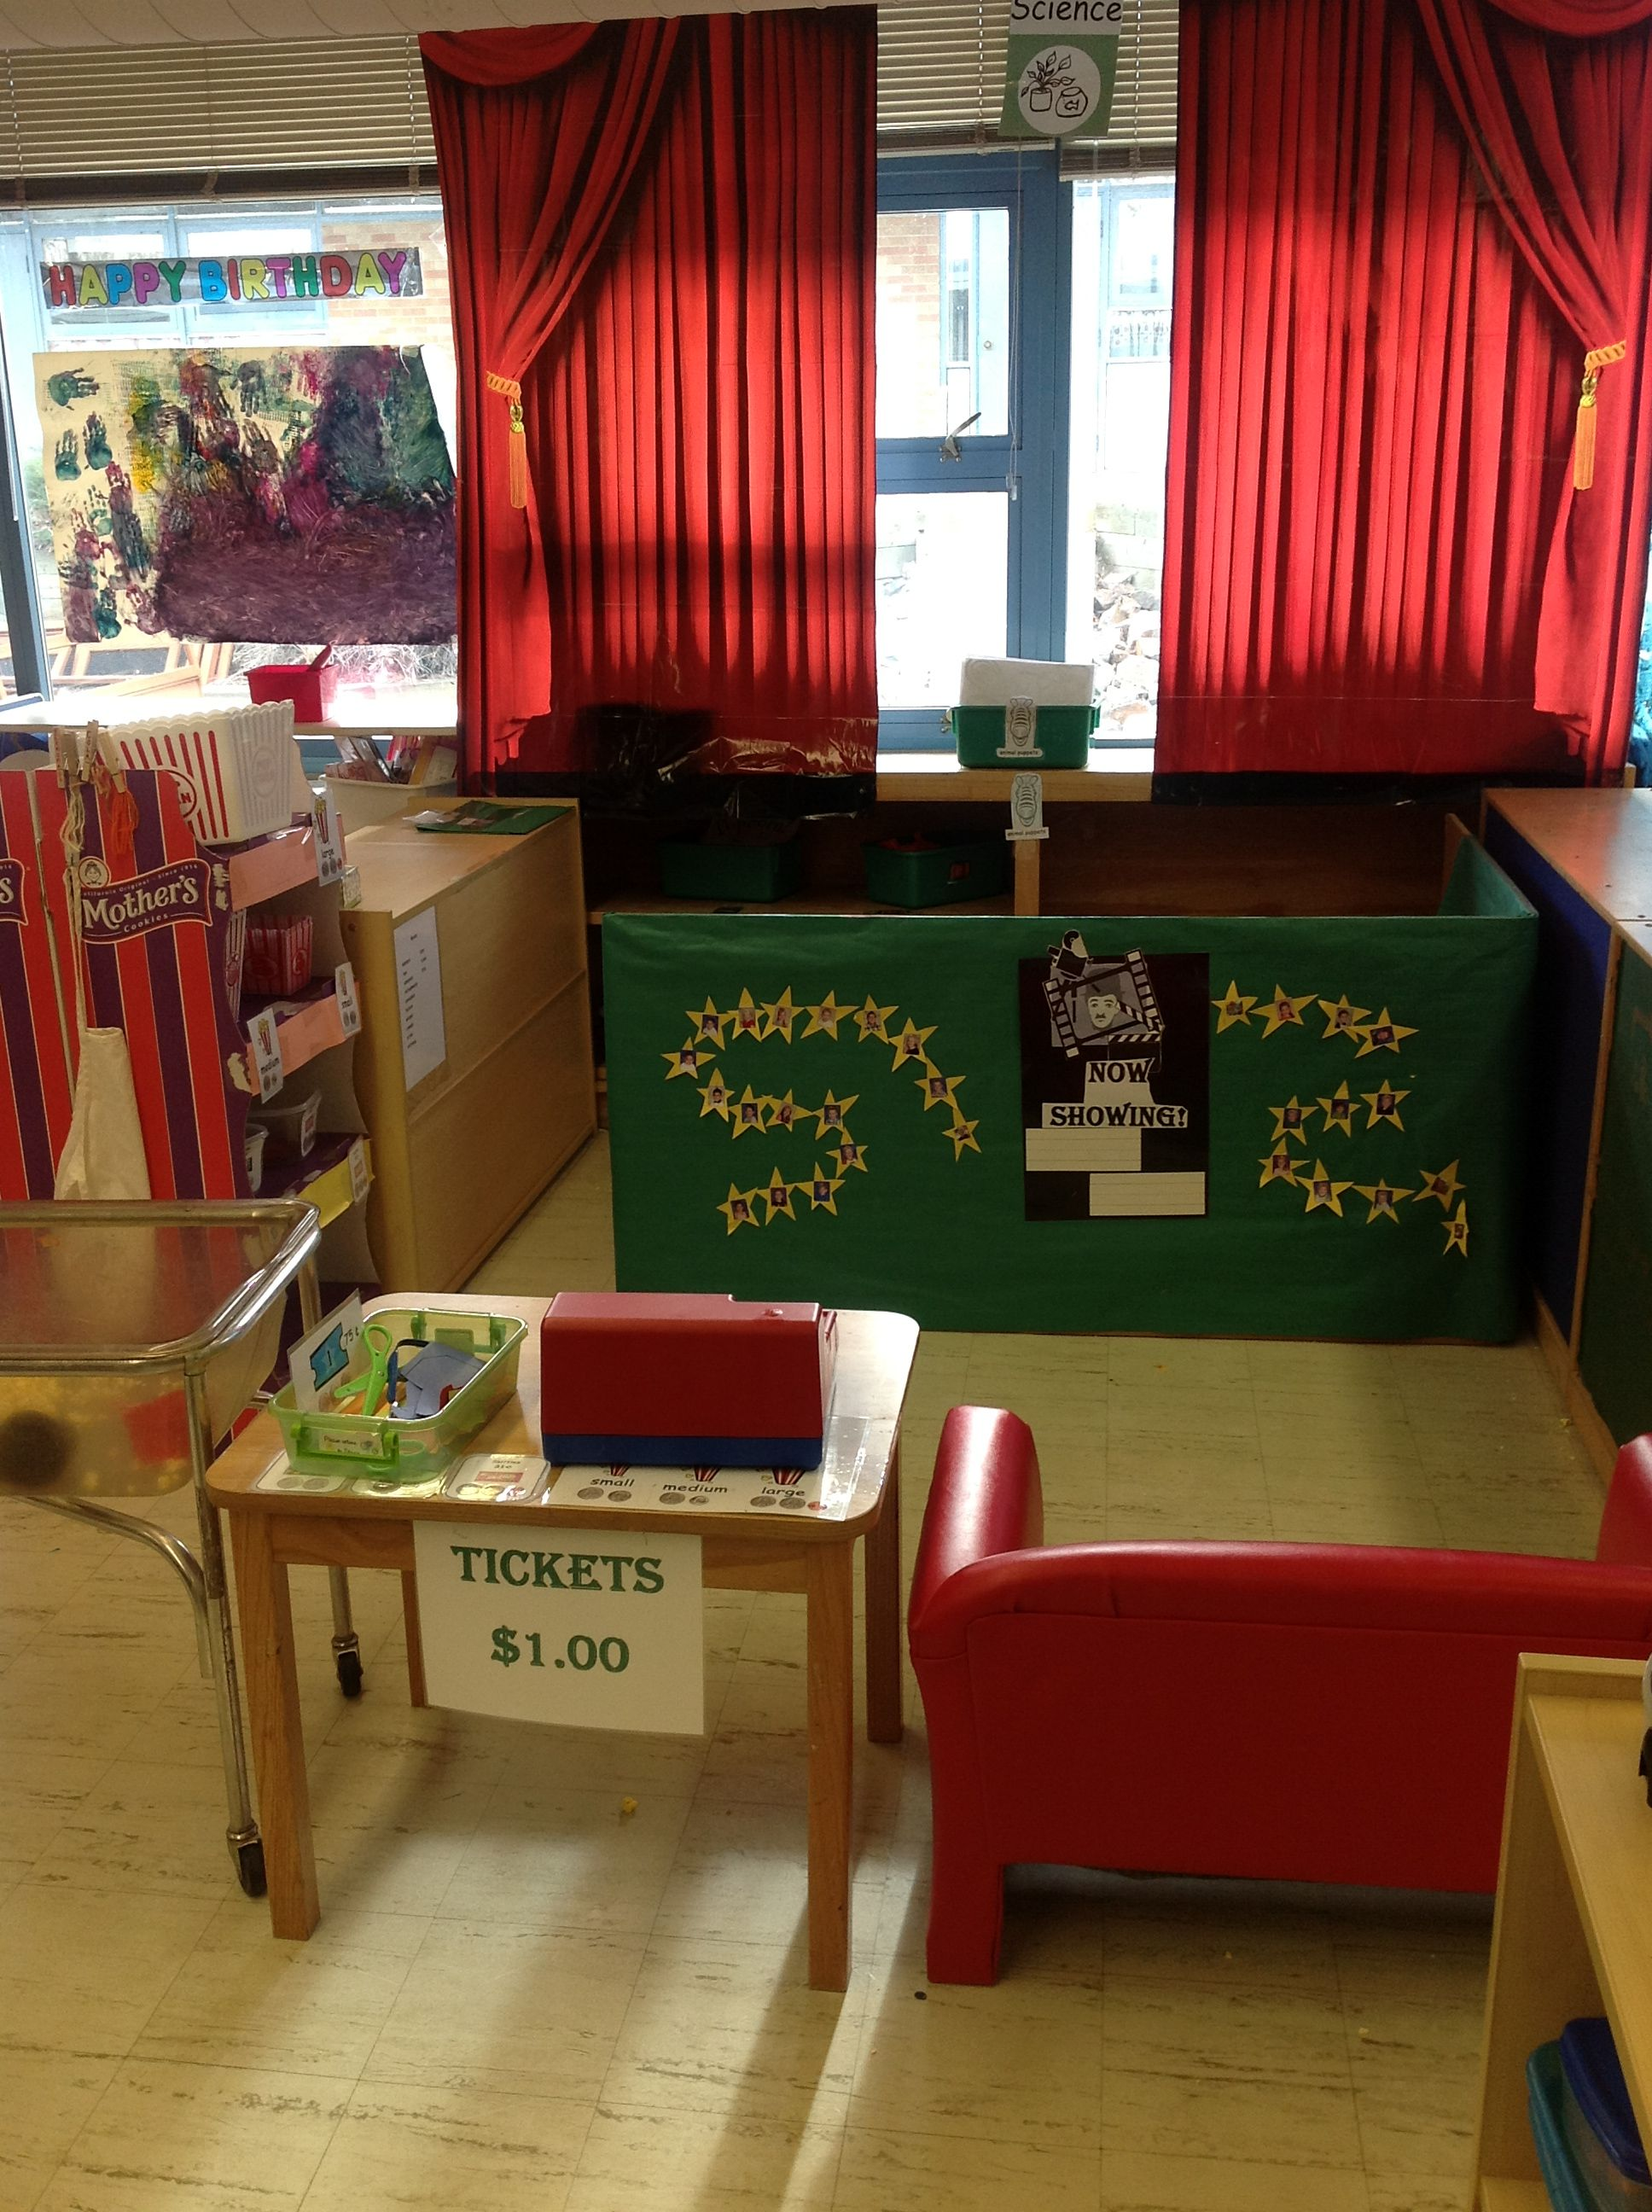 Maus Basteln Movie Theater At Pleasant View Preschool | Dramatic Play